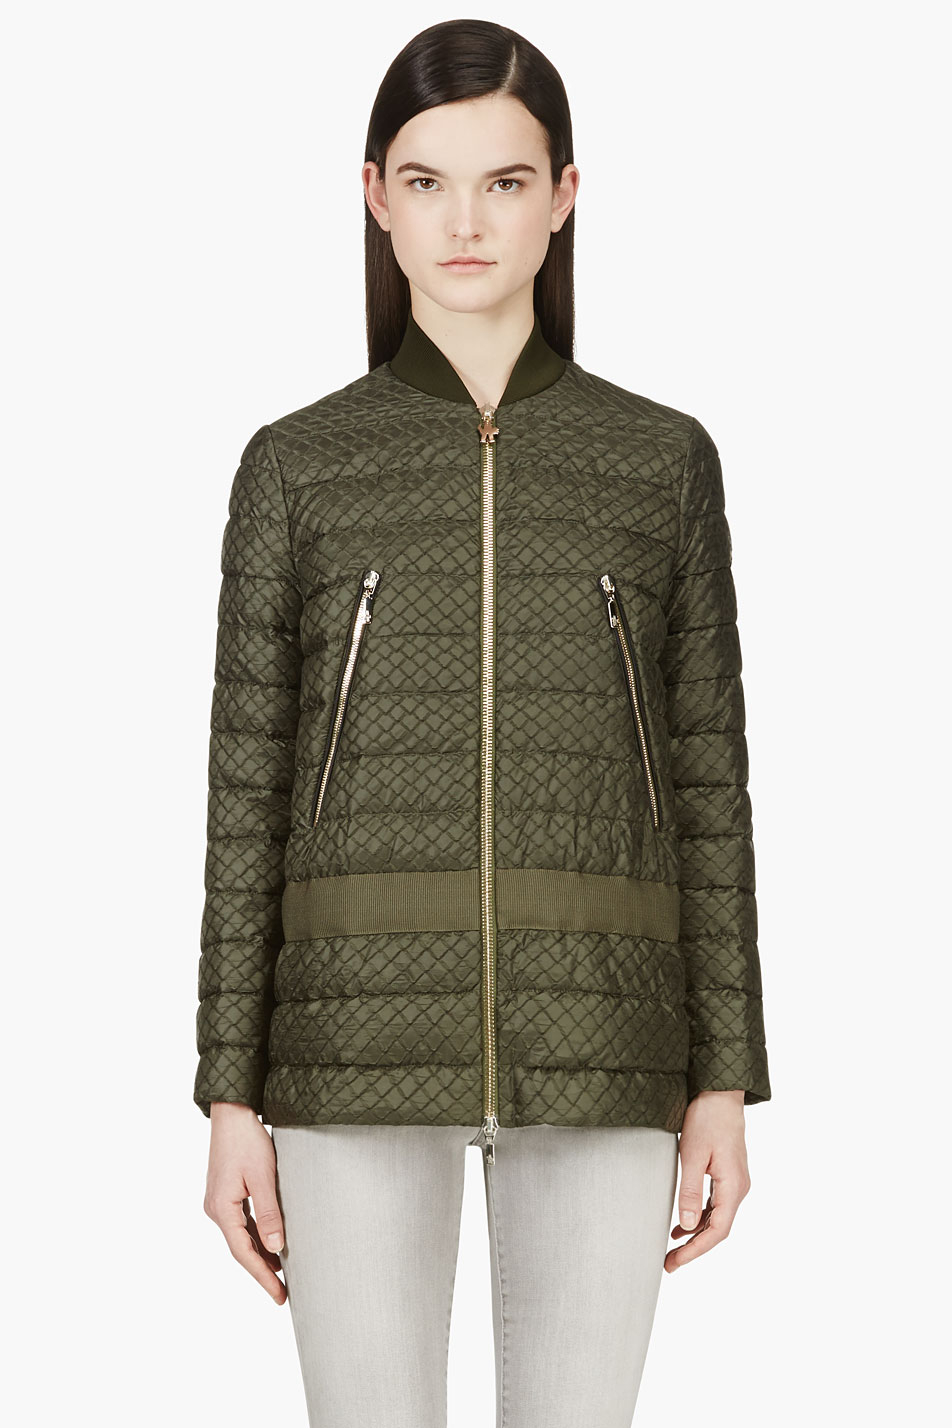 Moncler Jacket Puffer Moncler Rouge Rouge Rouge Puffer Puffer Rouge Moncler Jacket Jacket Jacket Moncler Puffer tw8PqfP